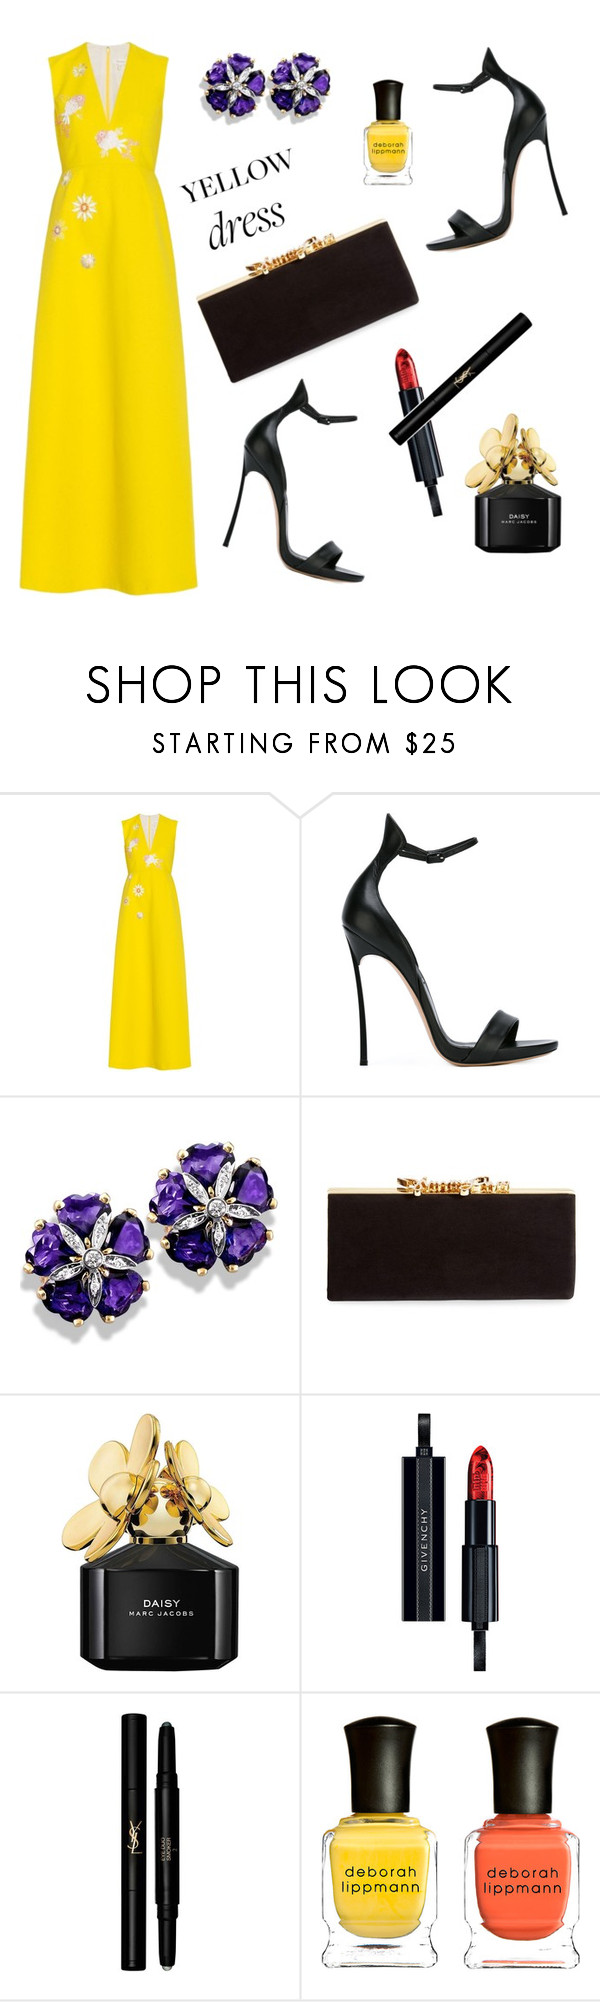 """Untitled #245"" by ivanov1234491 ❤ liked on Polyvore featuring Delpozo, Casadei, Jimmy Choo, Marc Jacobs, Givenchy, Yves Saint Laurent and Deborah Lippmann"